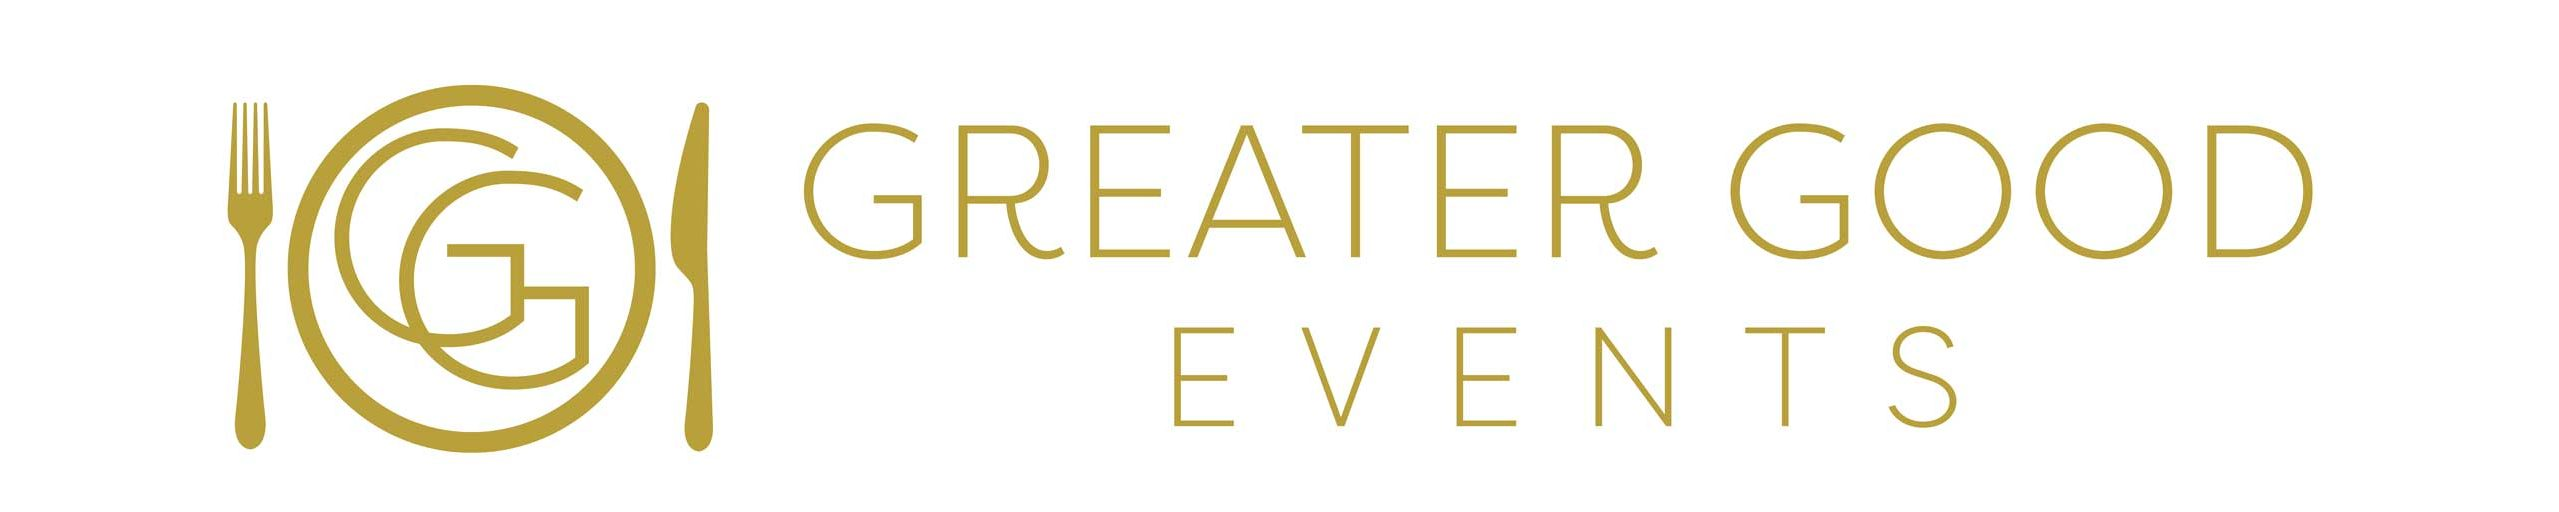 Greater Good Events long logo.